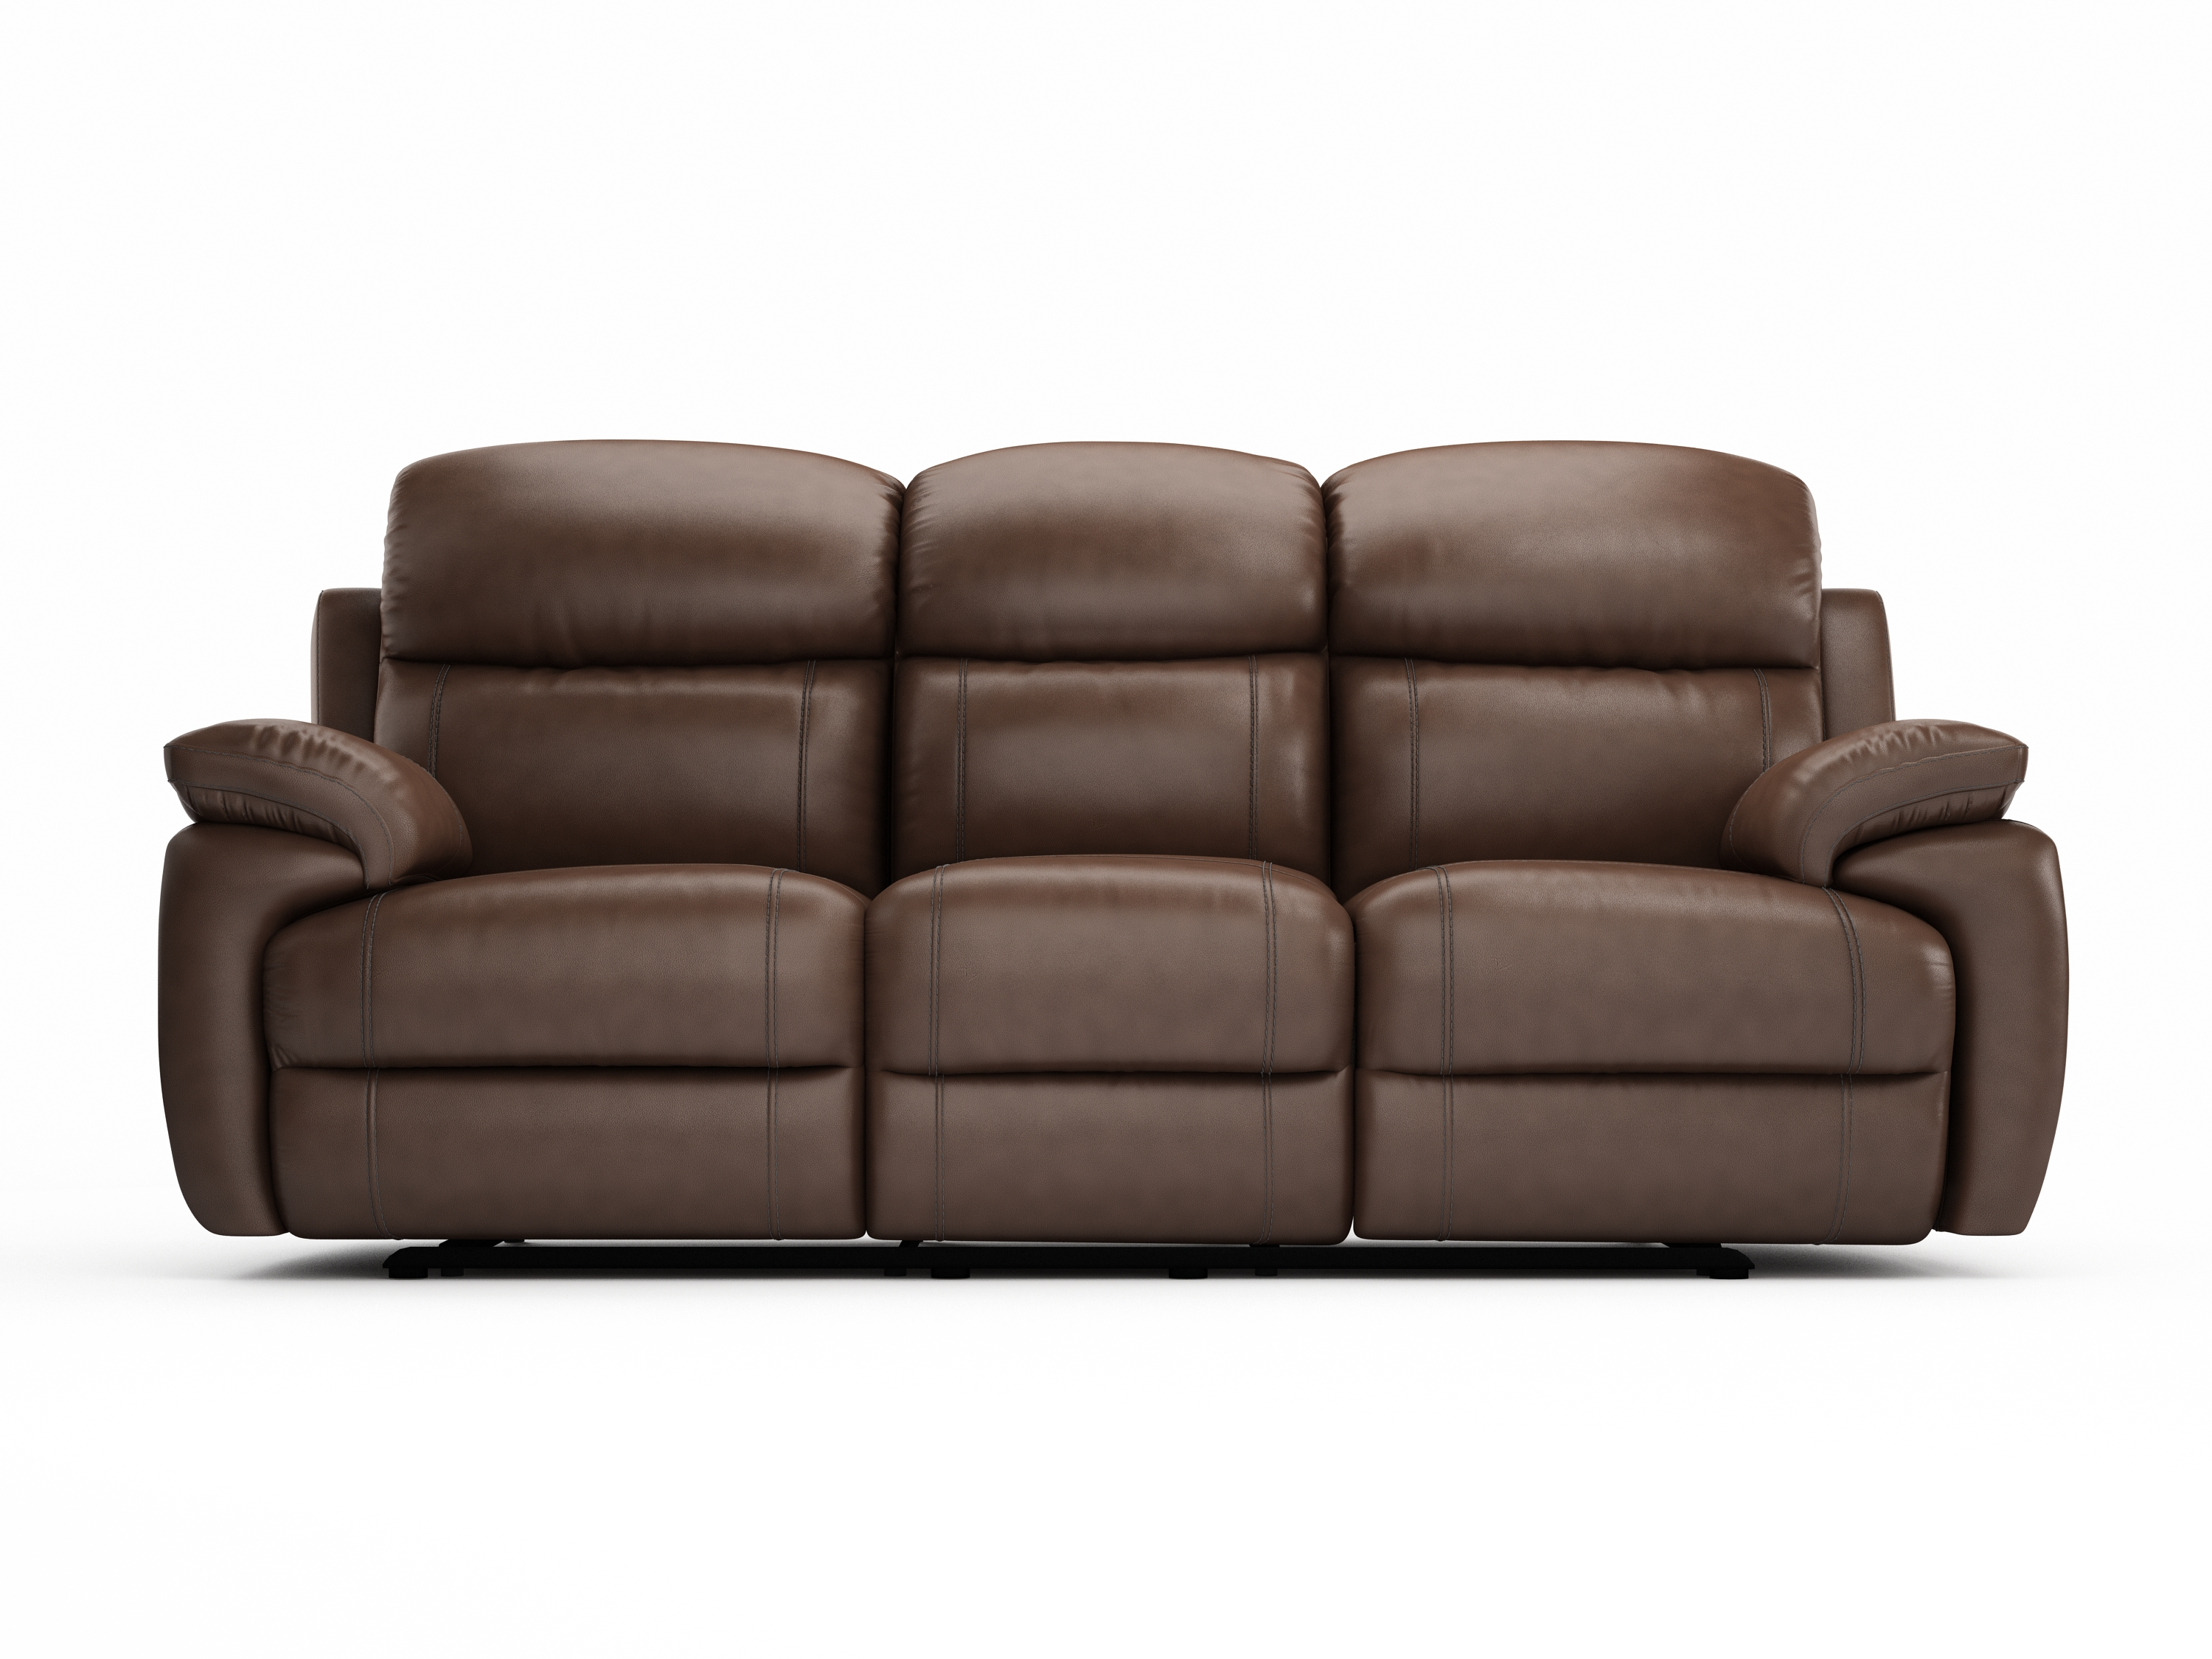 2 seater sofa singapore brown leather design ideas recliner review home co